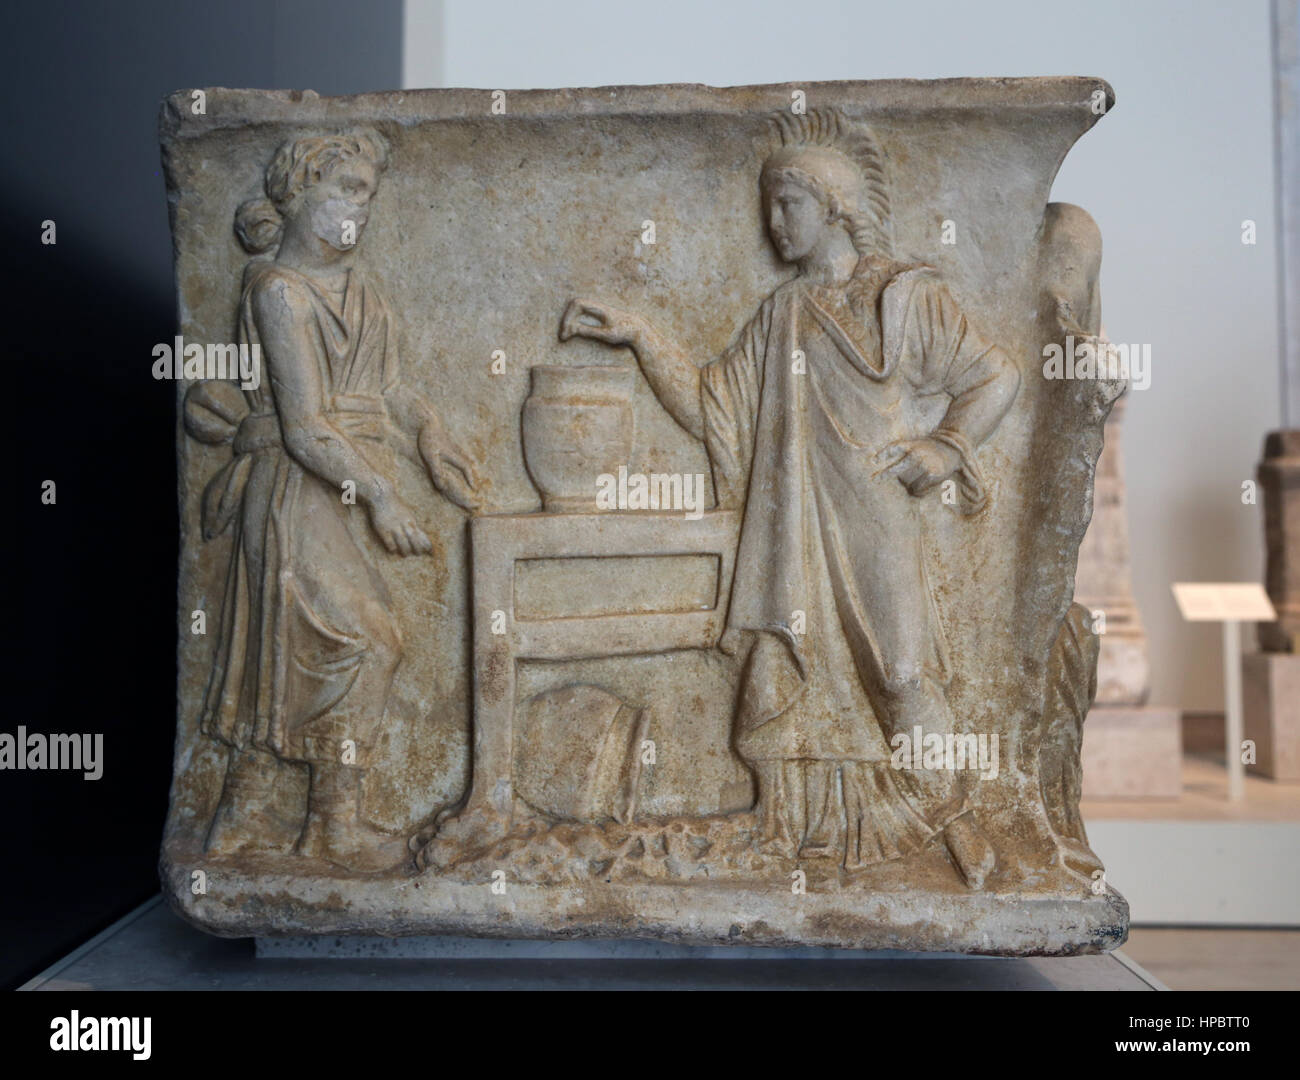 Husillos sarcophagus. 2nd century Ad. Roman. Legend of Orestes. Judgment. Athena voting. Husillos, Palencia, Spain. - Stock Image